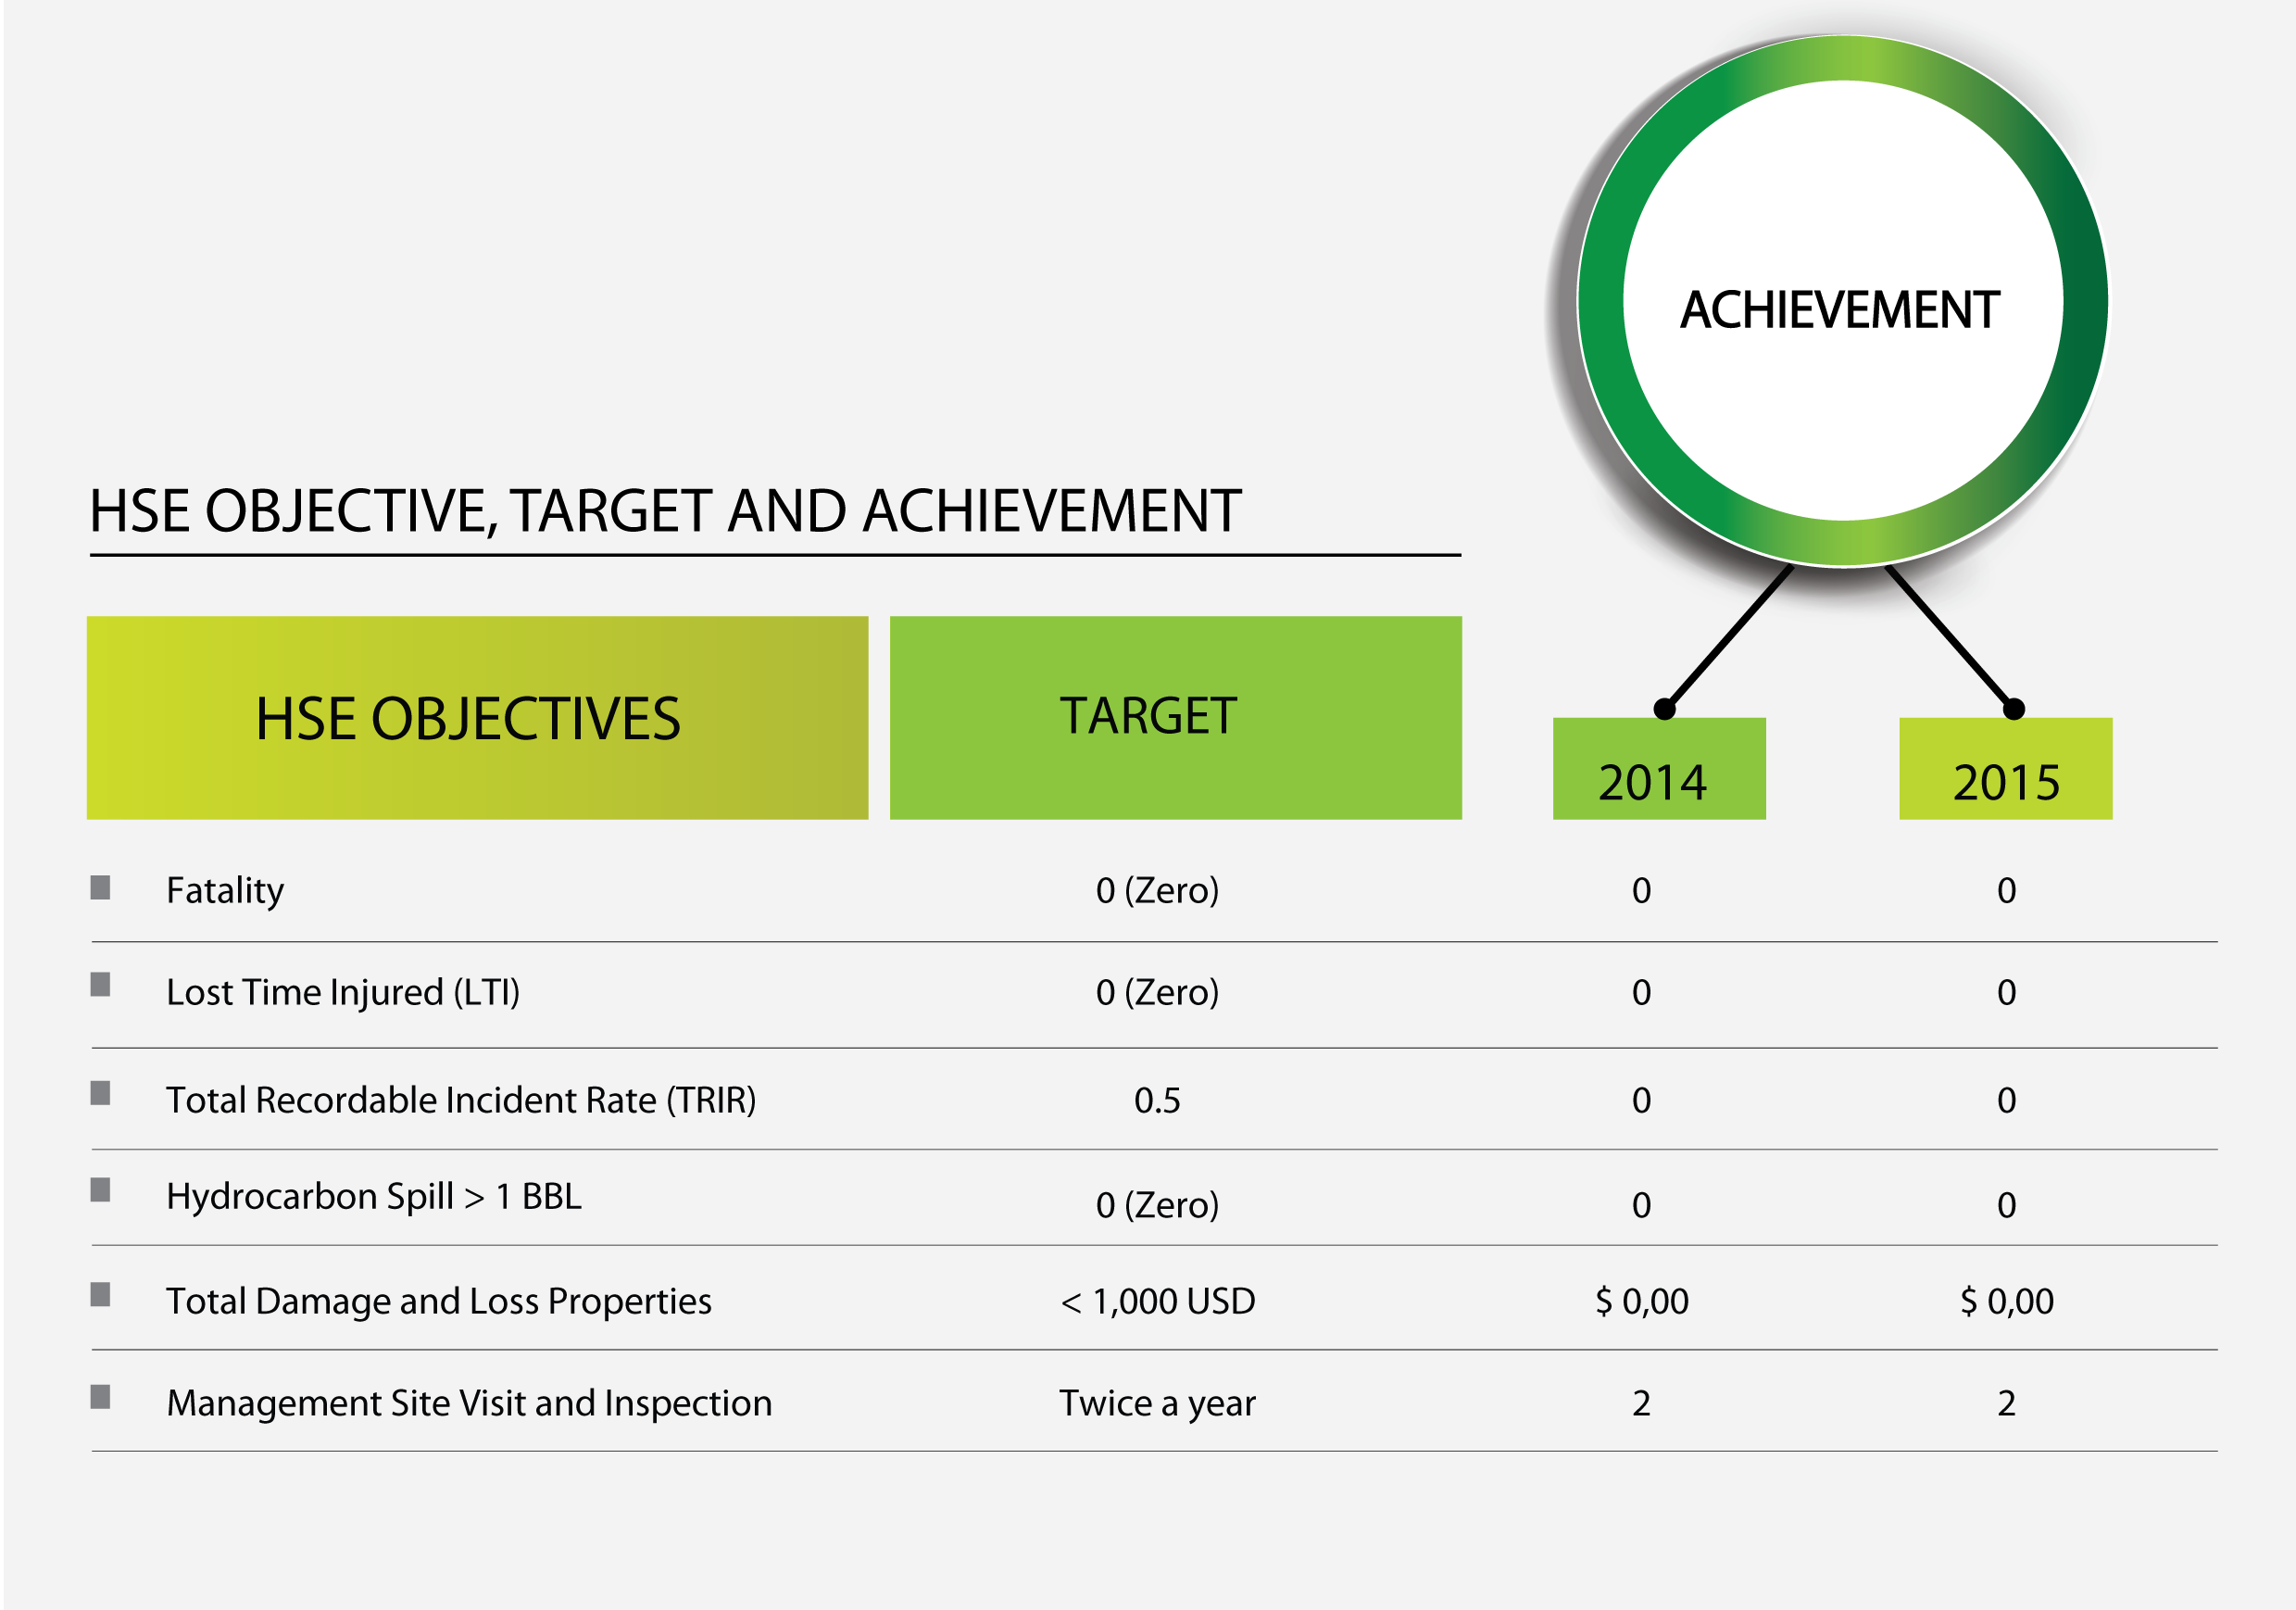 Hse Objective Target And Achievement Prowell Energy